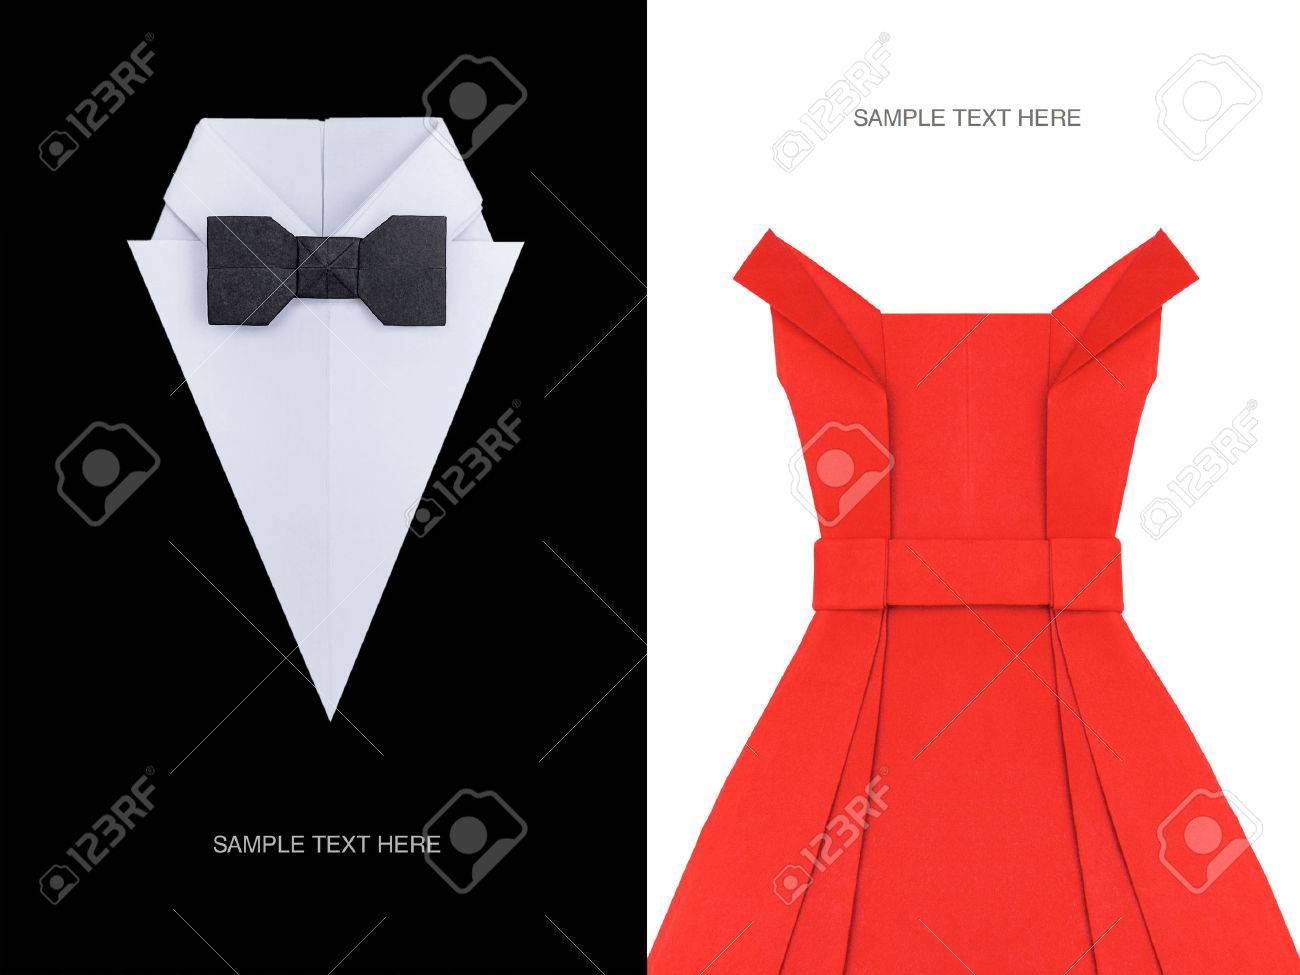 2bdc336857b3 Origami paper men's white shirt with red bow tie and red event evening  cocktail fashion dress